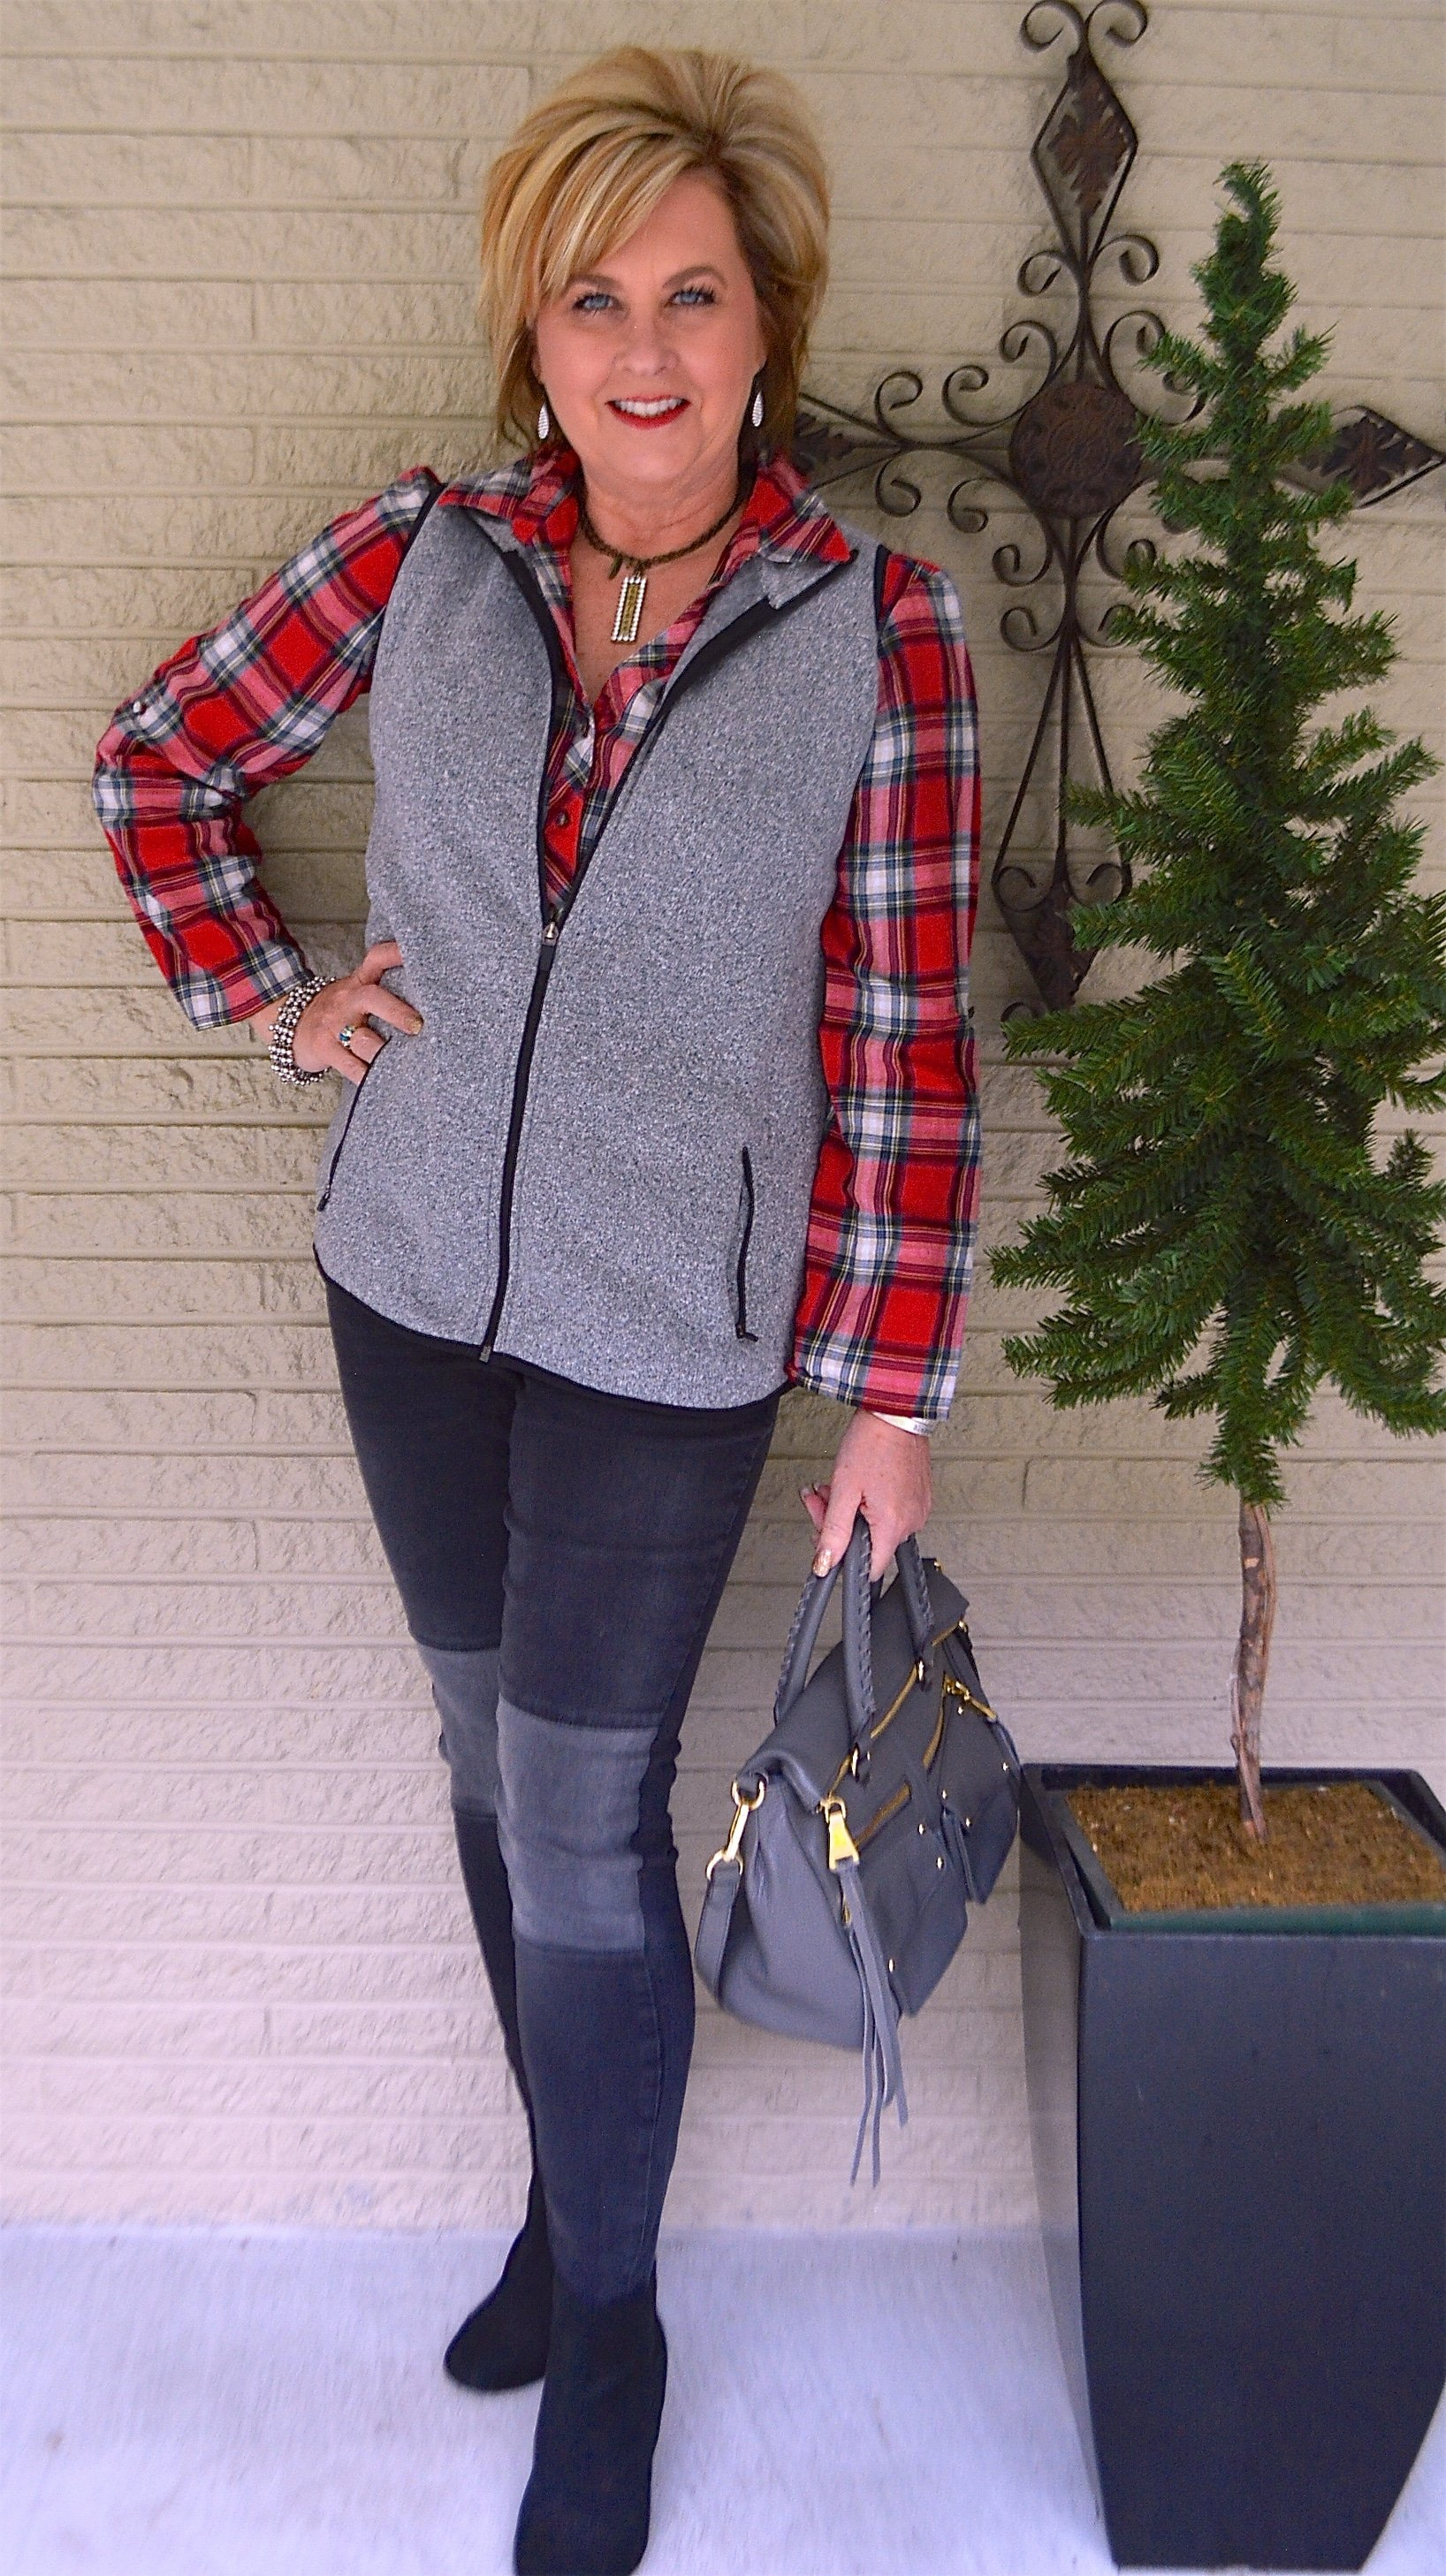 Fashion Blogger 50 Is Not Old in a red plaid shirt, a gray vest, and black jeans